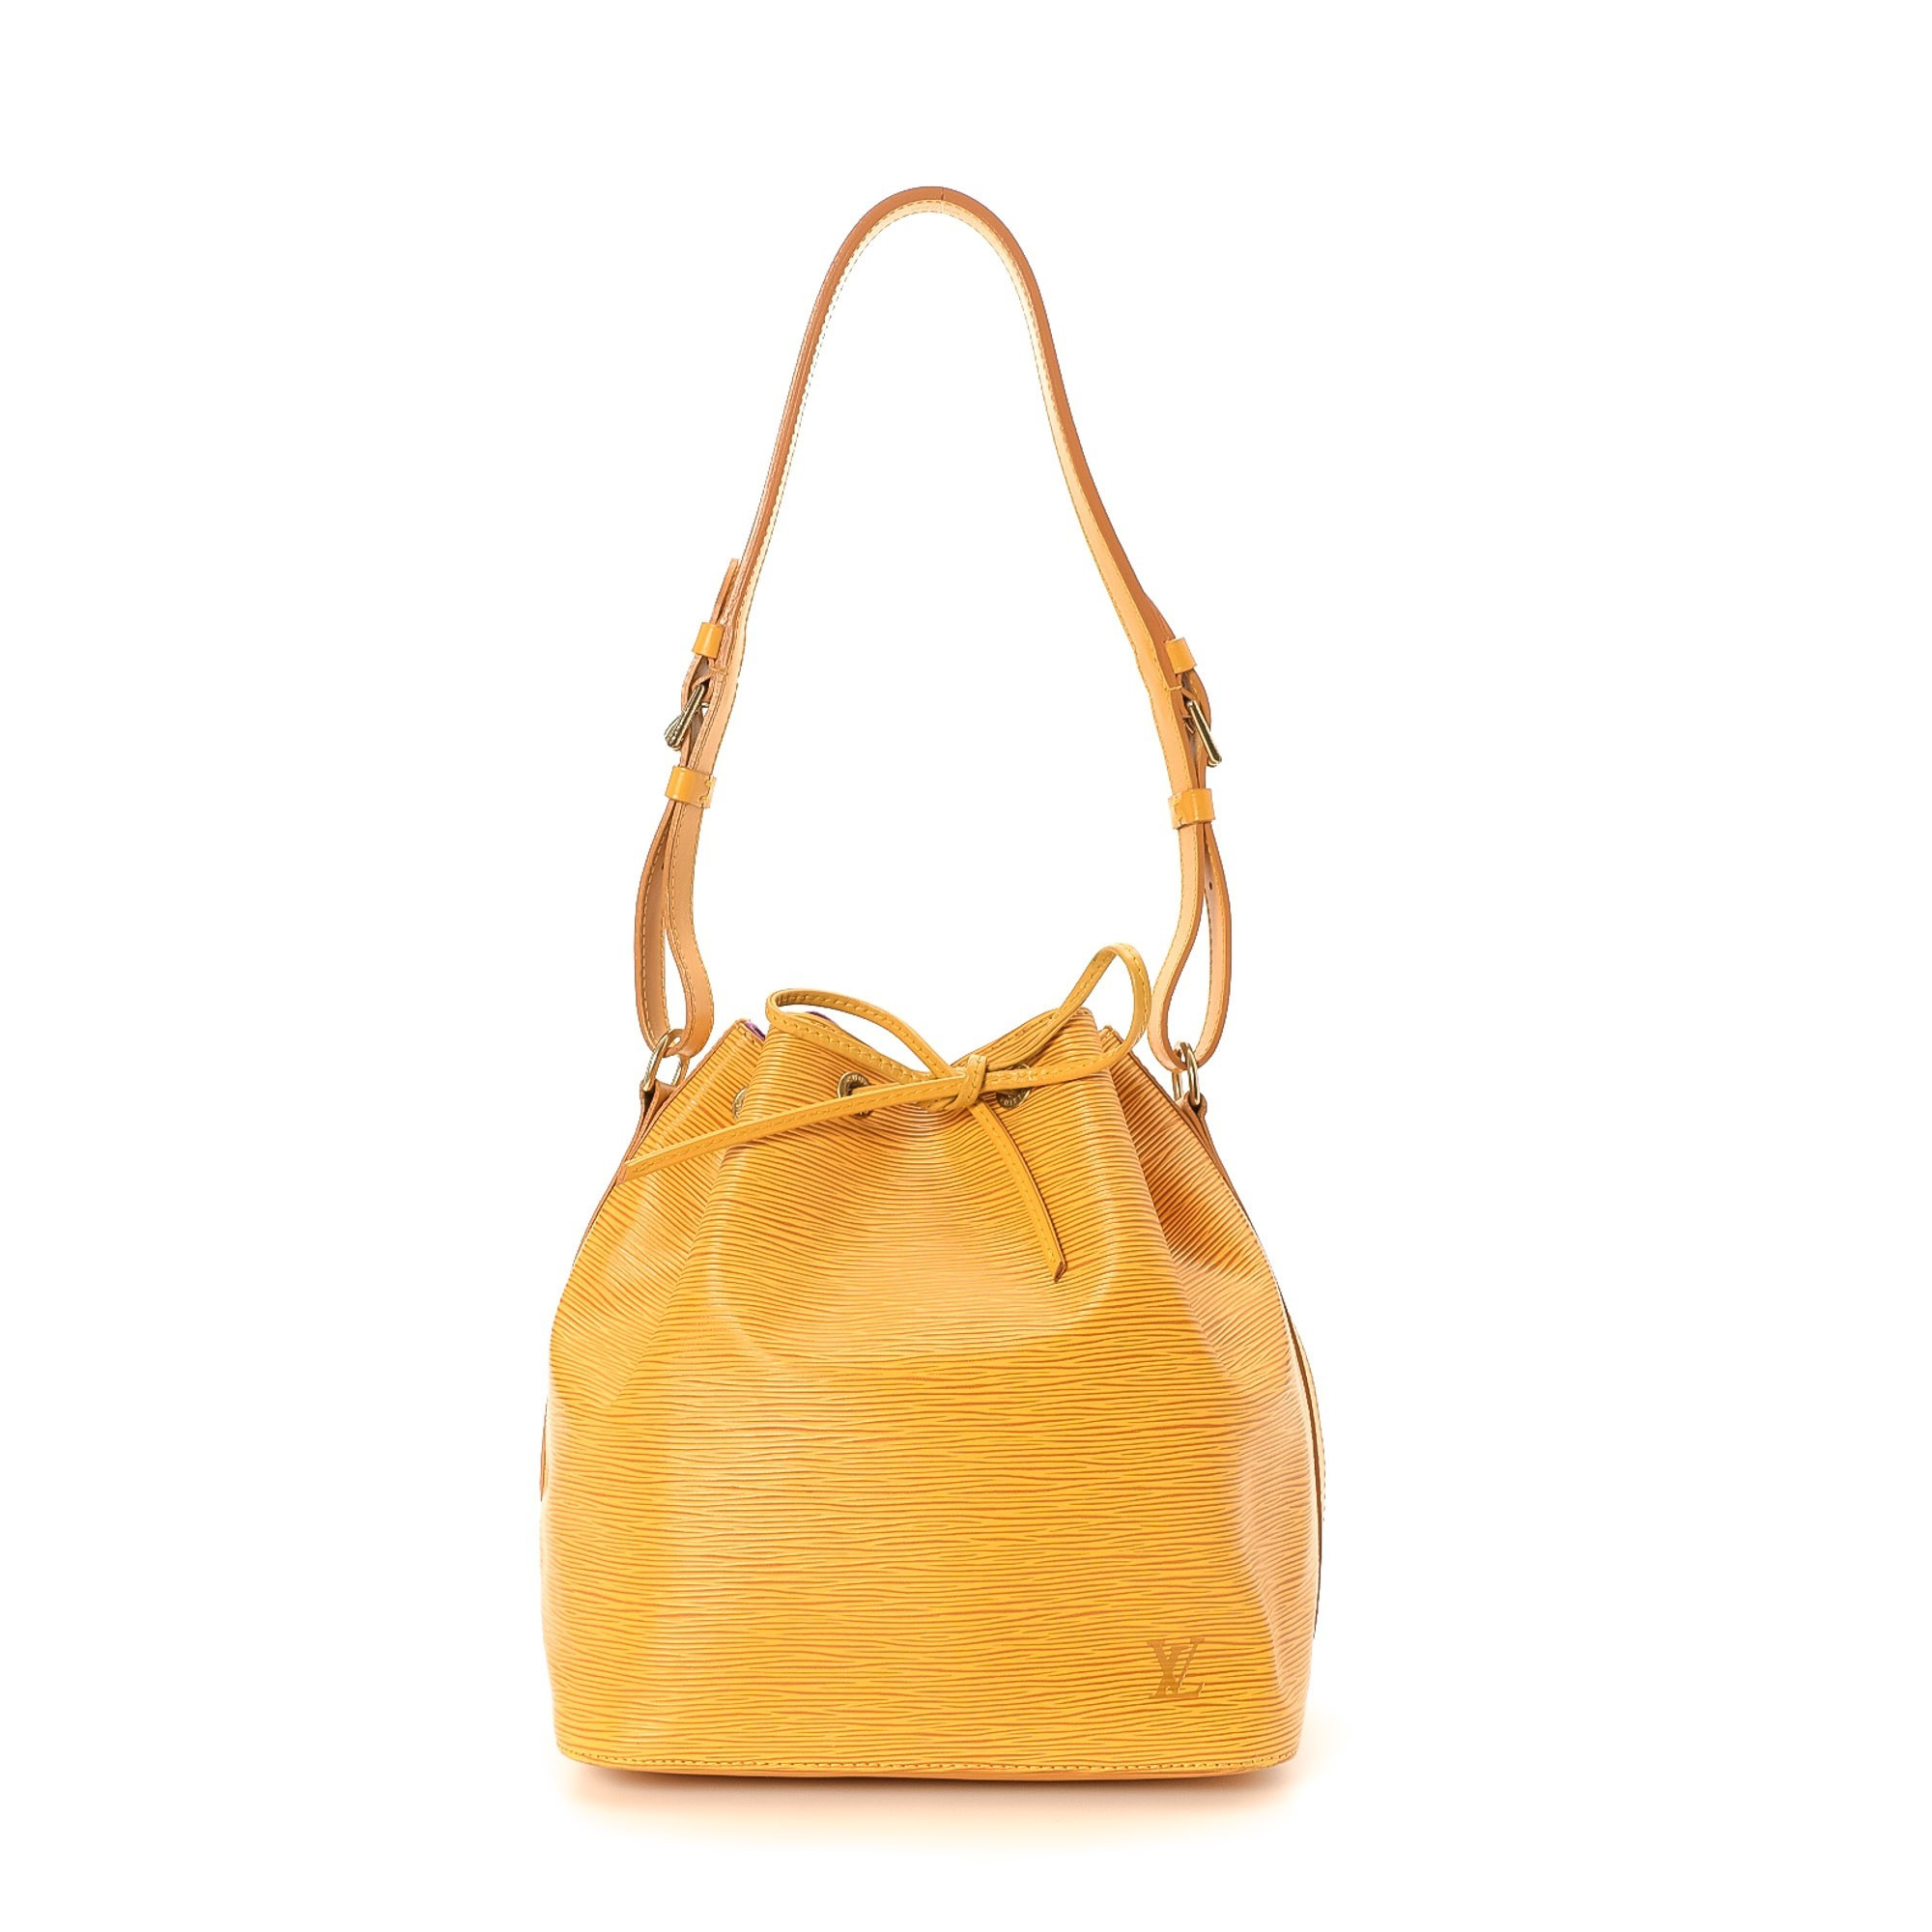 Louis Vuitton Petit Noe Epi Tassil yellow Leather Shoulder Bag LXRCO